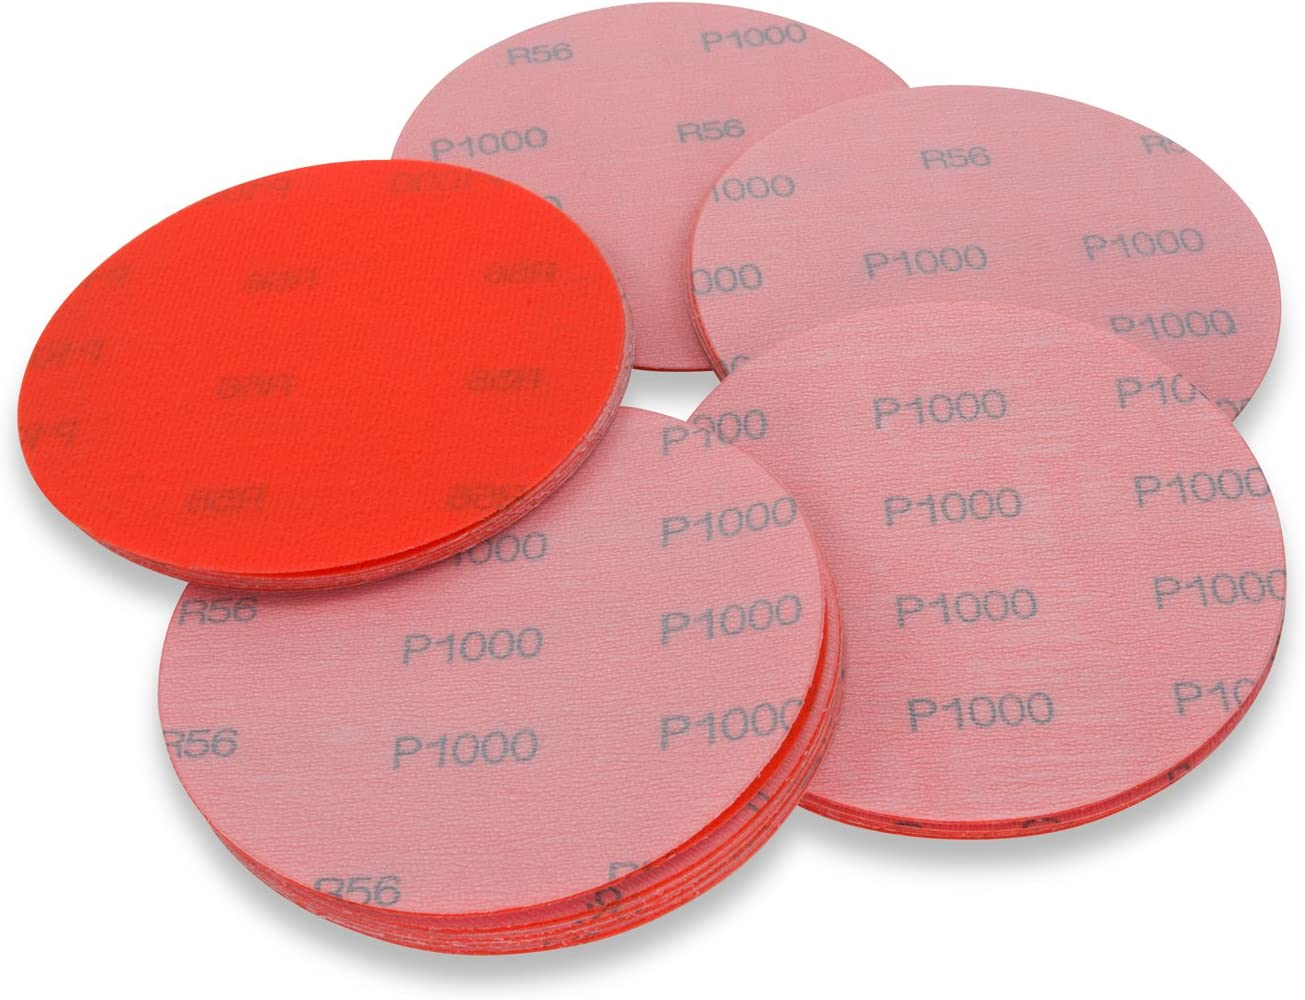 5 Inch 1000 Grit Hook and Loop Wet//Dry Auto Body Film Sanding Discs 50 Pack